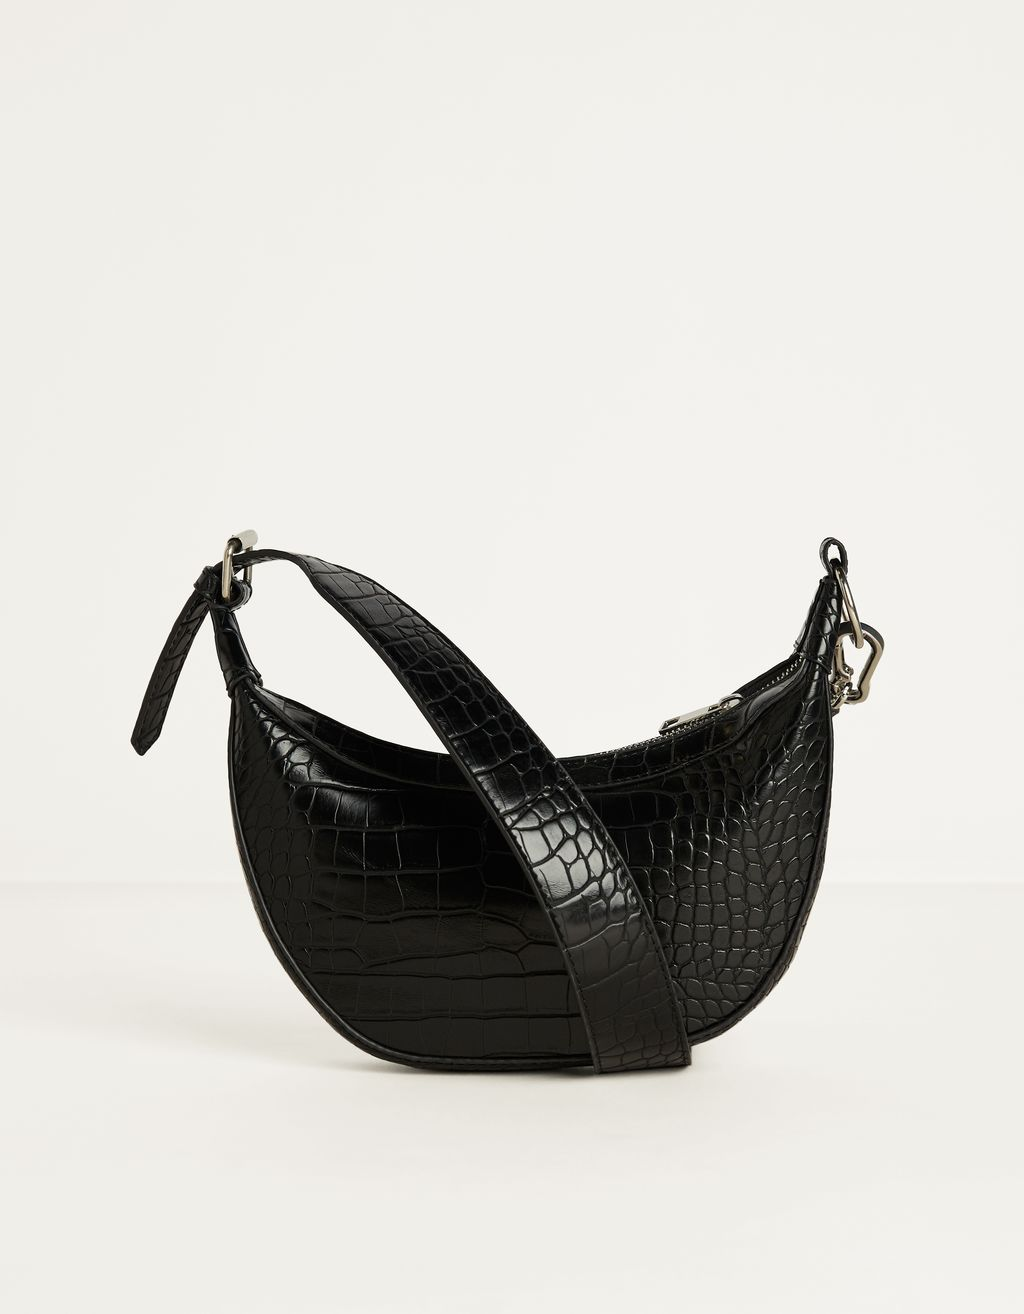 Sac en similicuir imitation croco